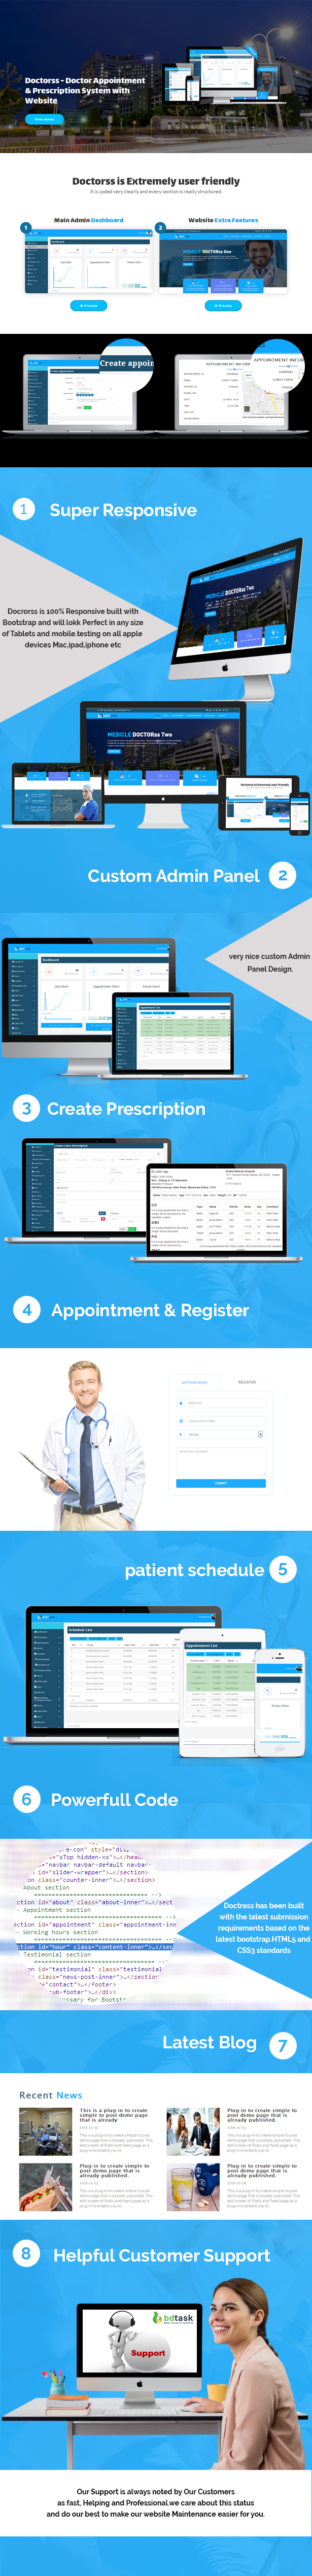 Doctorss doctor appointment and prescription system with website doctorss main features spiritdancerdesigns Images